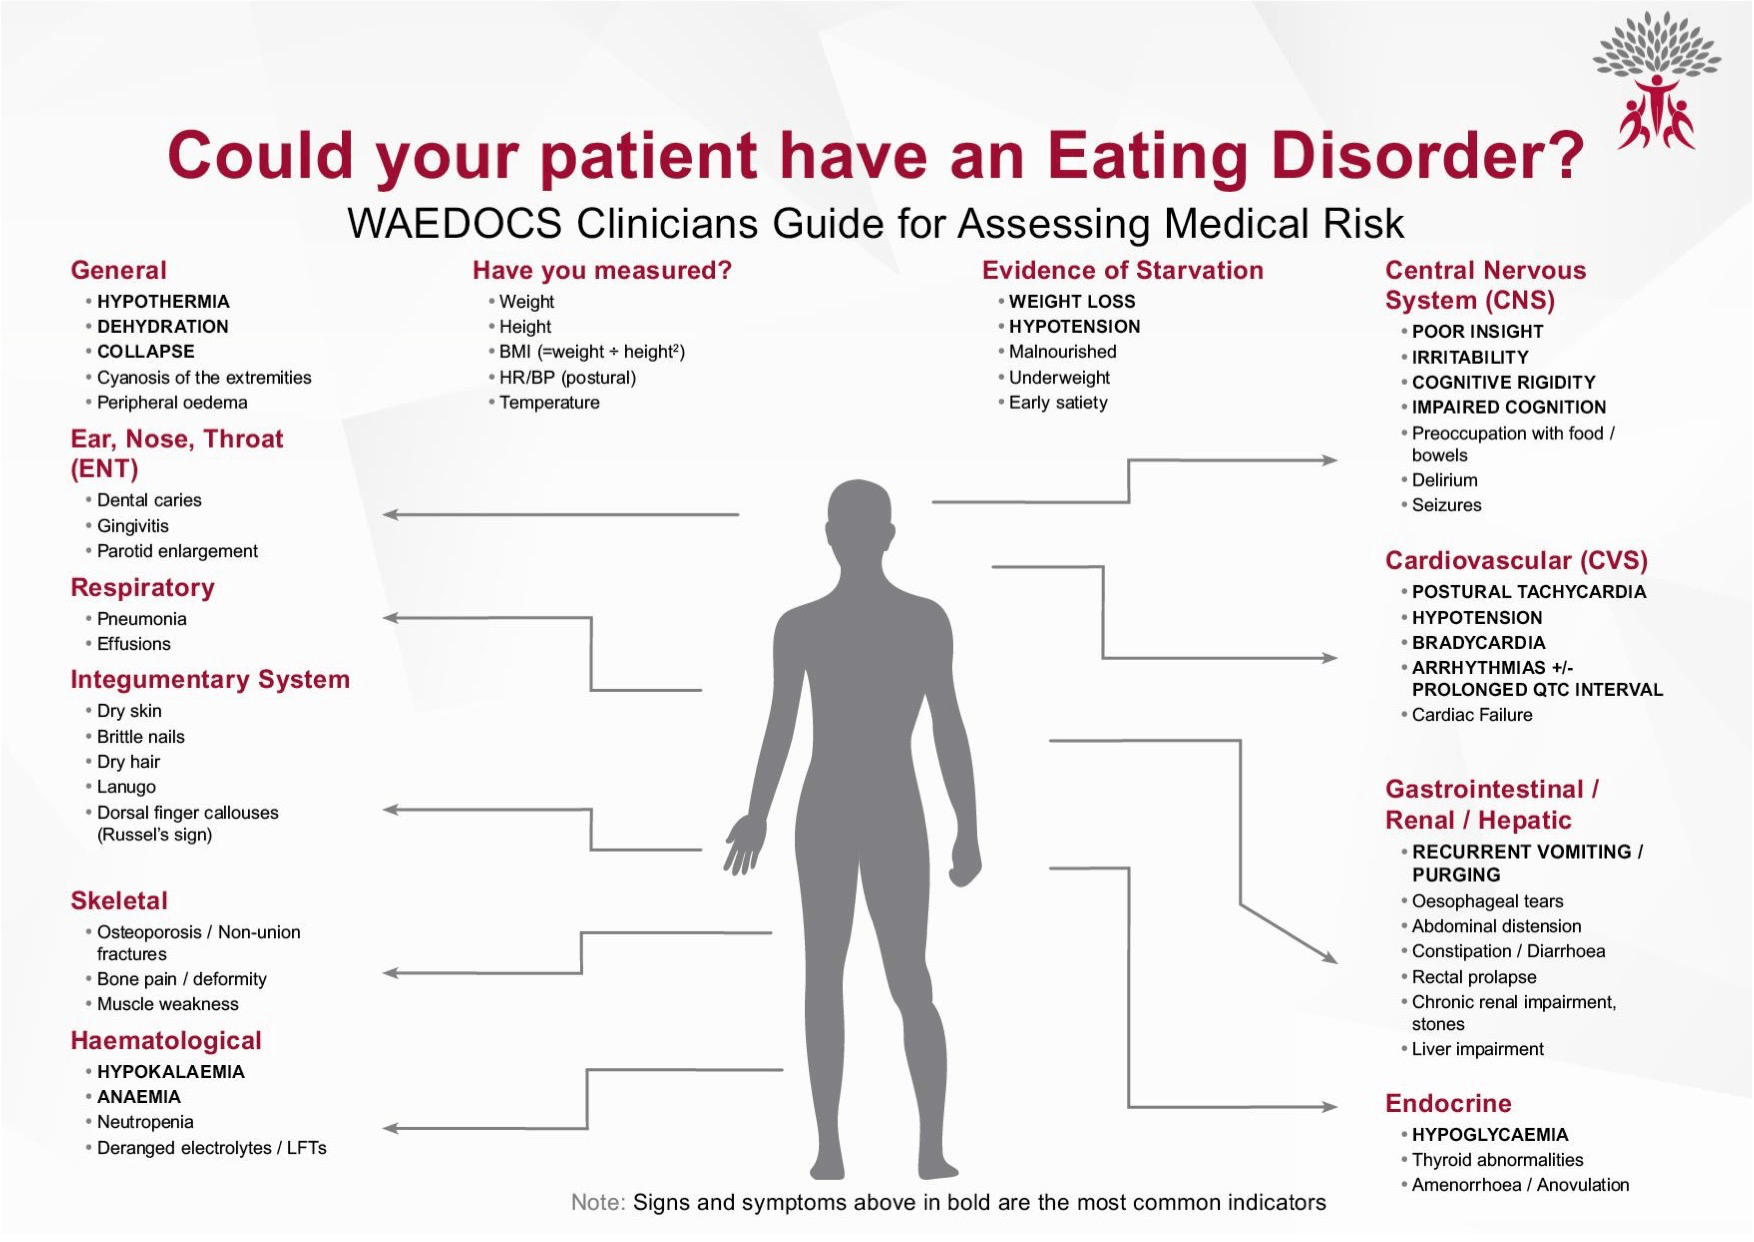 Could your patient have an eating disorder